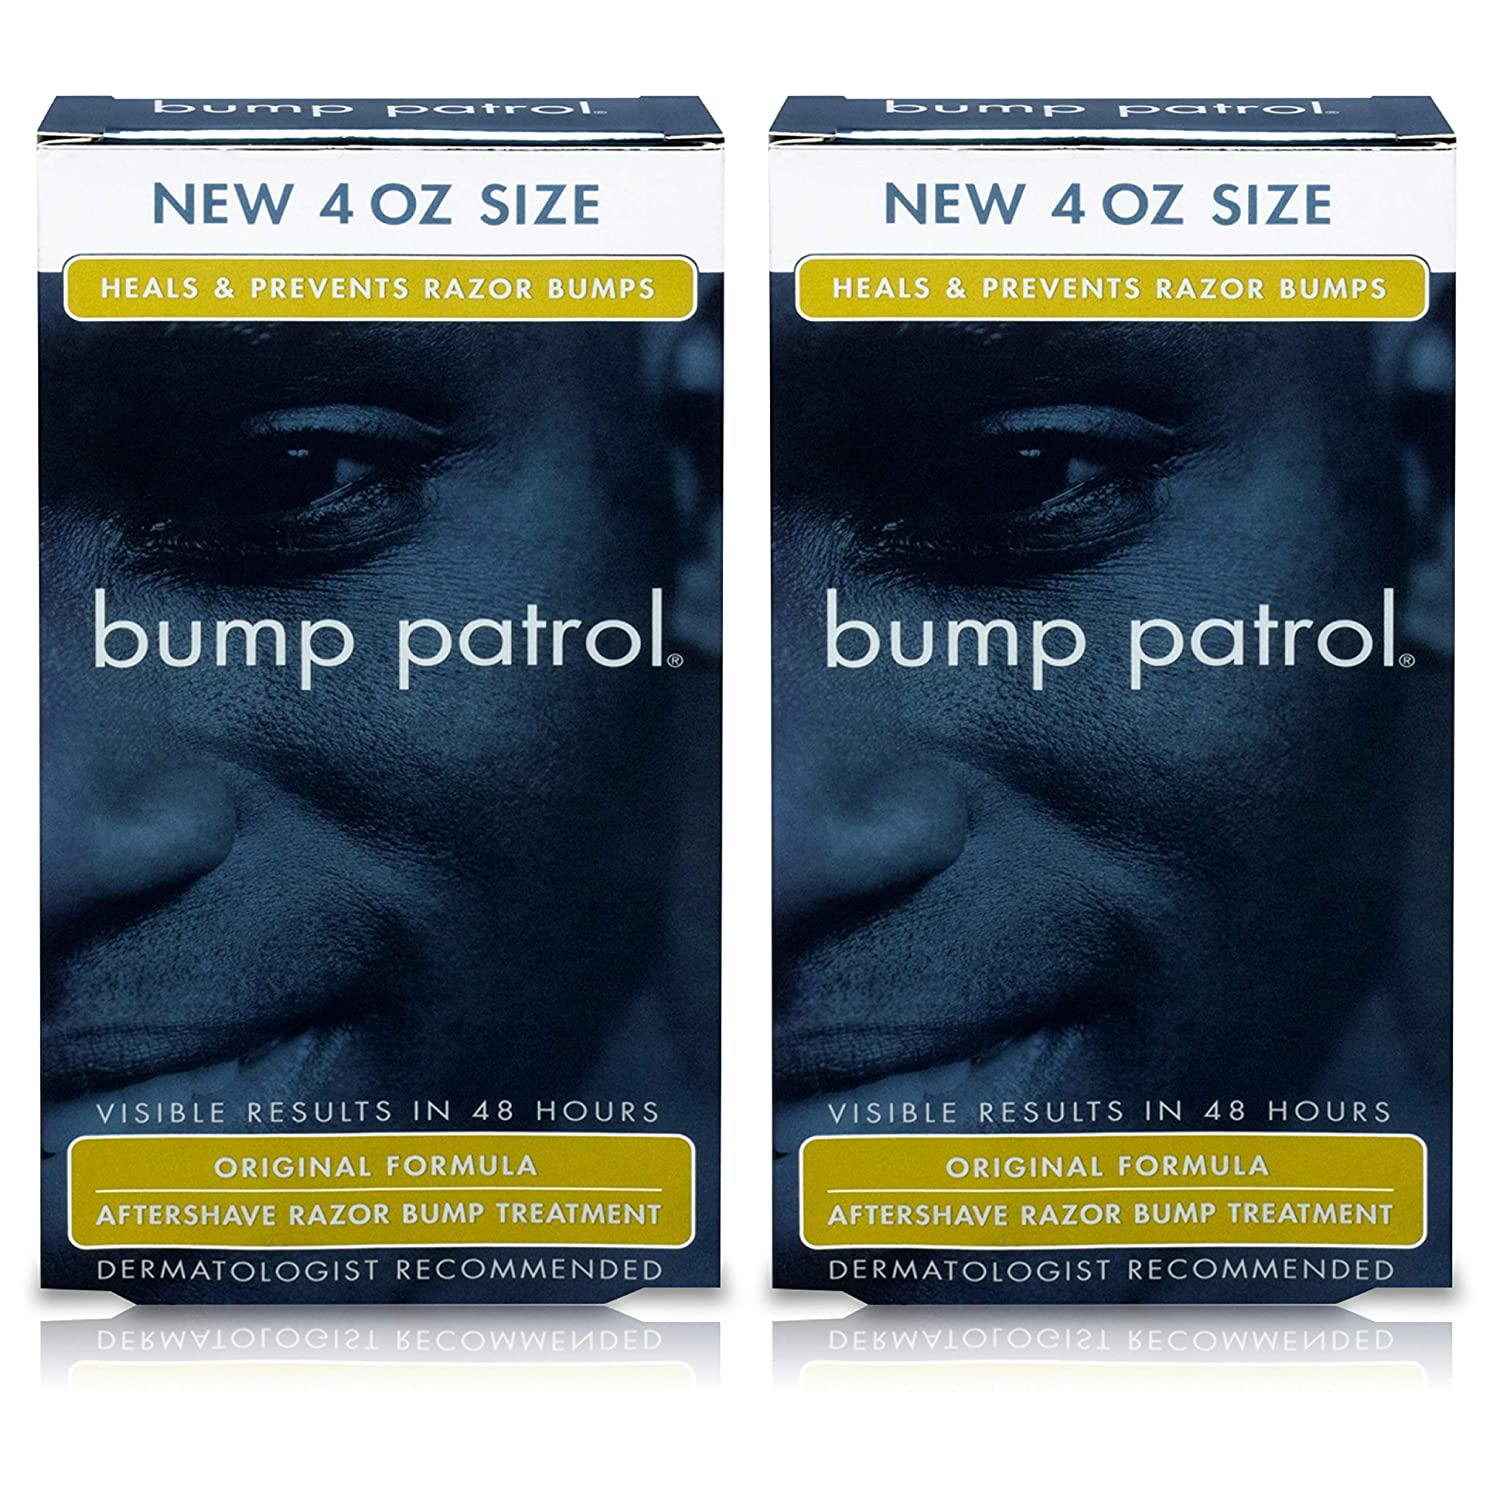 Bump Patrol Original Formula After Shave Bump Treatment Serum - Razor Bumps, Ingrown Hair Solution for Men and Women - 4 Ounces Atlas Ethnic 0612831022115